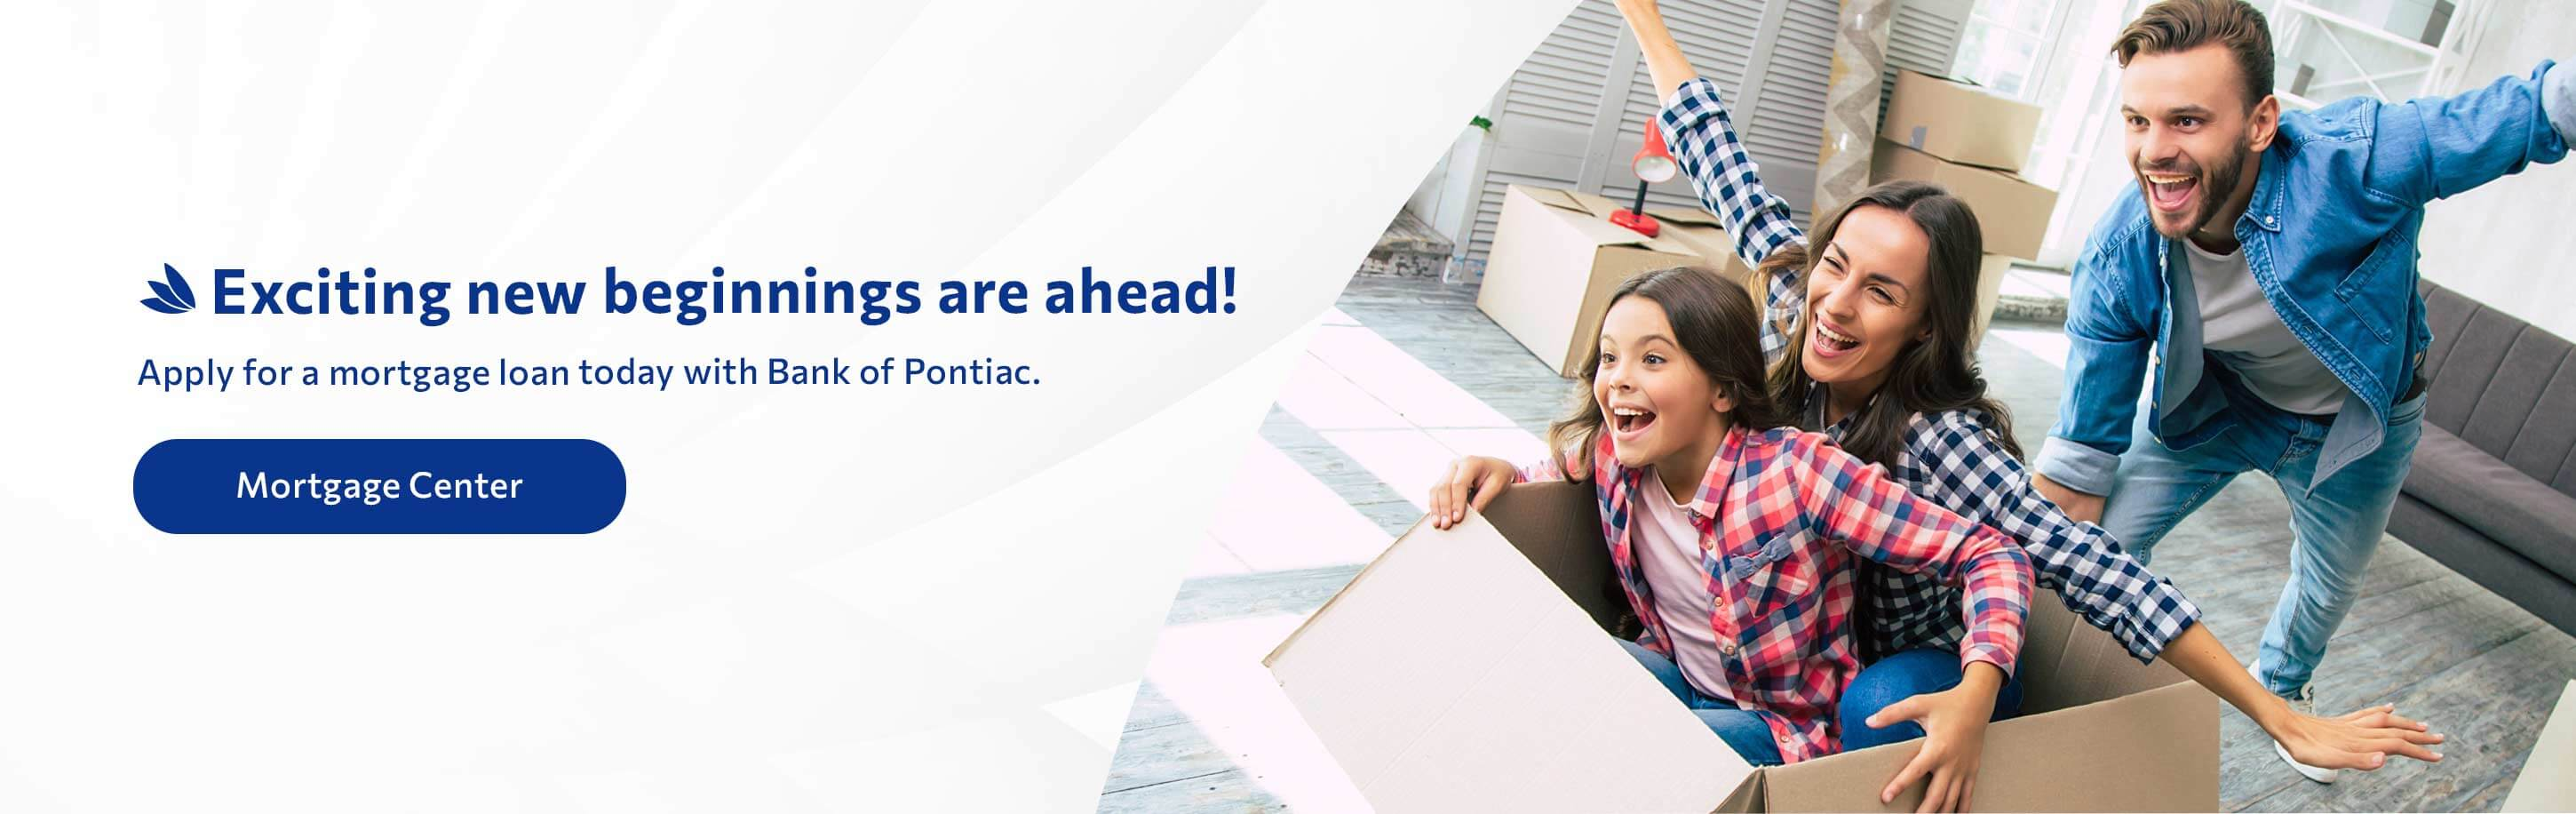 Exciting new beginnings are ahead! Apply for a mortgage loan today with Bank of Pontiac. Mortgage Center.